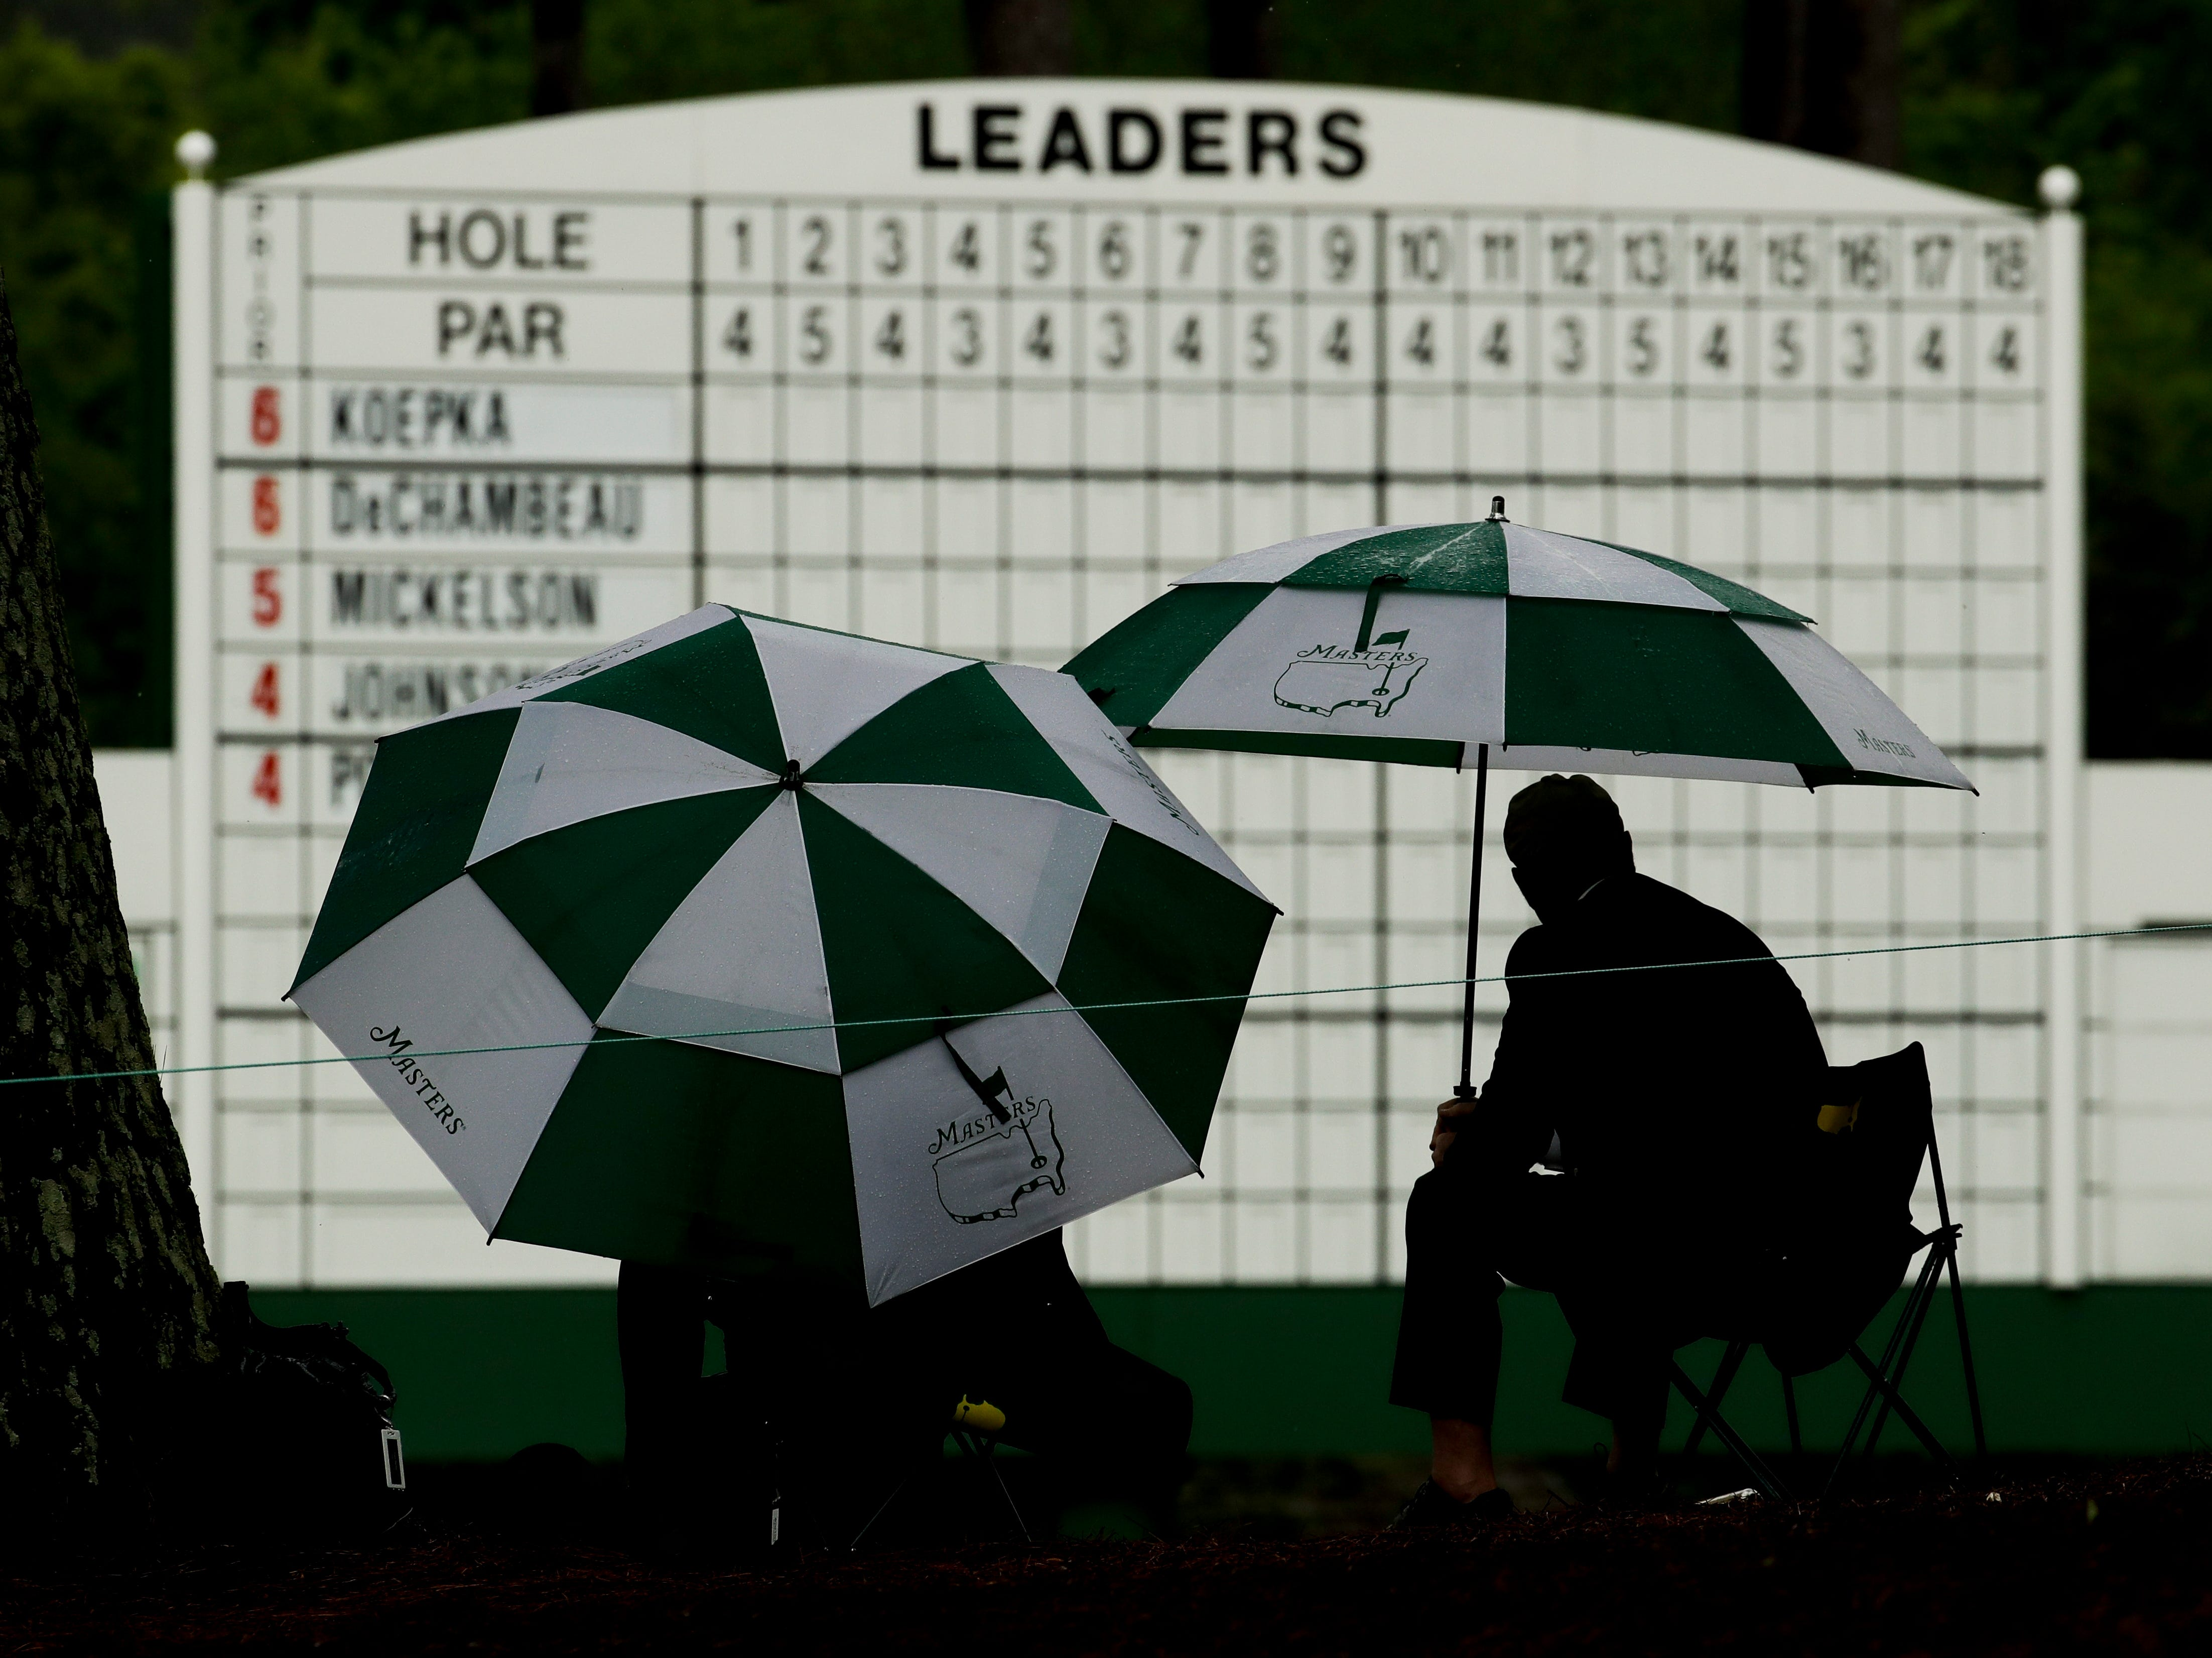 Patrons watch from under umbrellas during the second round for the Masters golf tournament Friday, April 12, 2019, in Augusta, Ga.